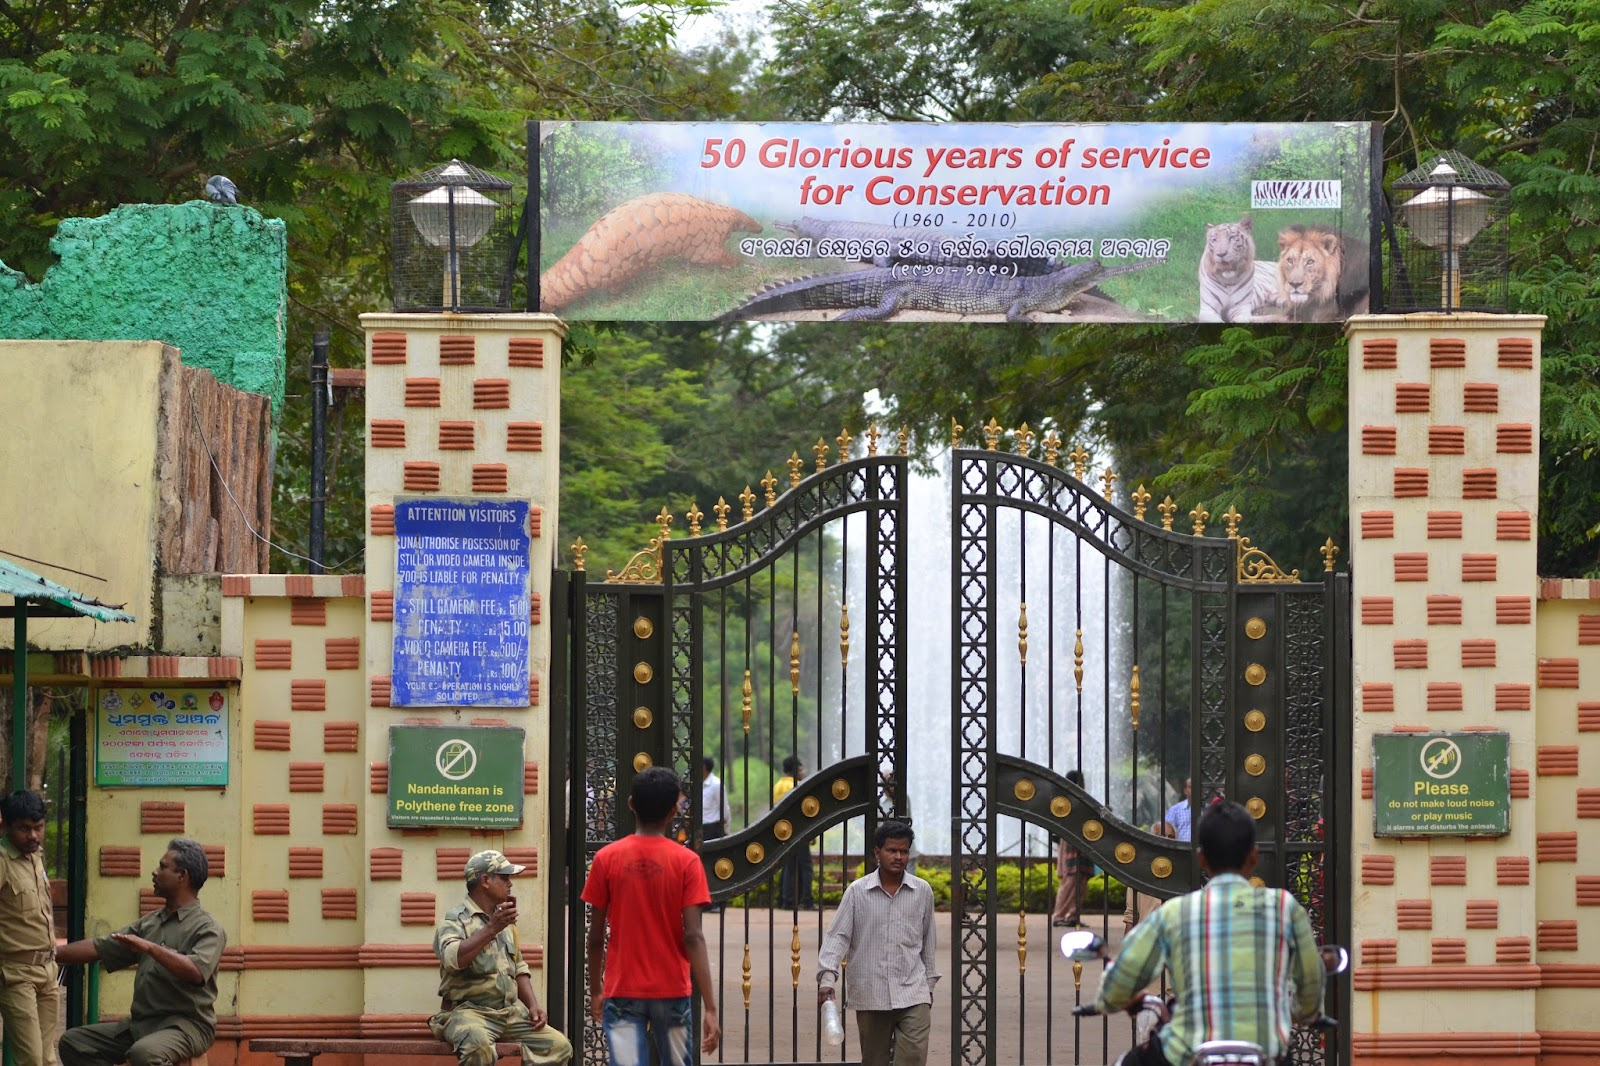 Entrance of Nandankanan zoological park